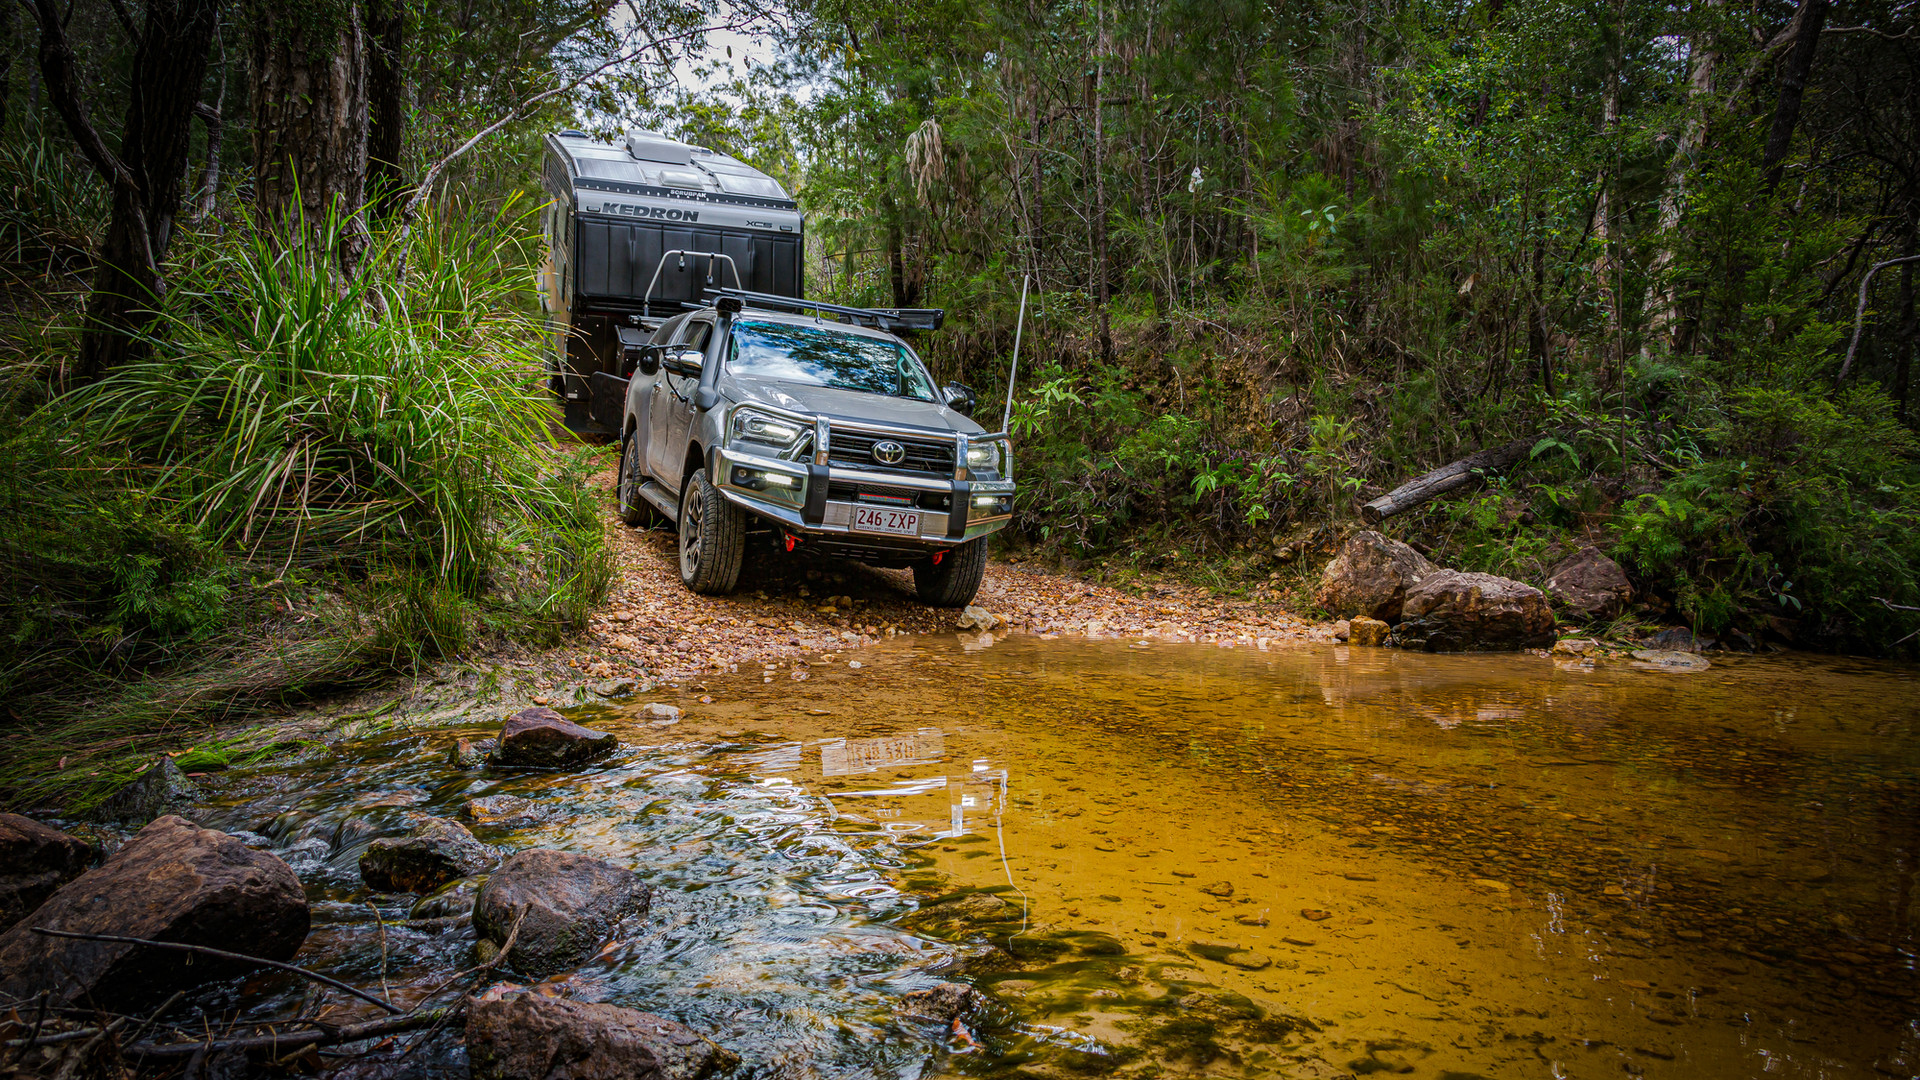 Toyota Hilux towing - creek crossing - image Glen Gall ©️